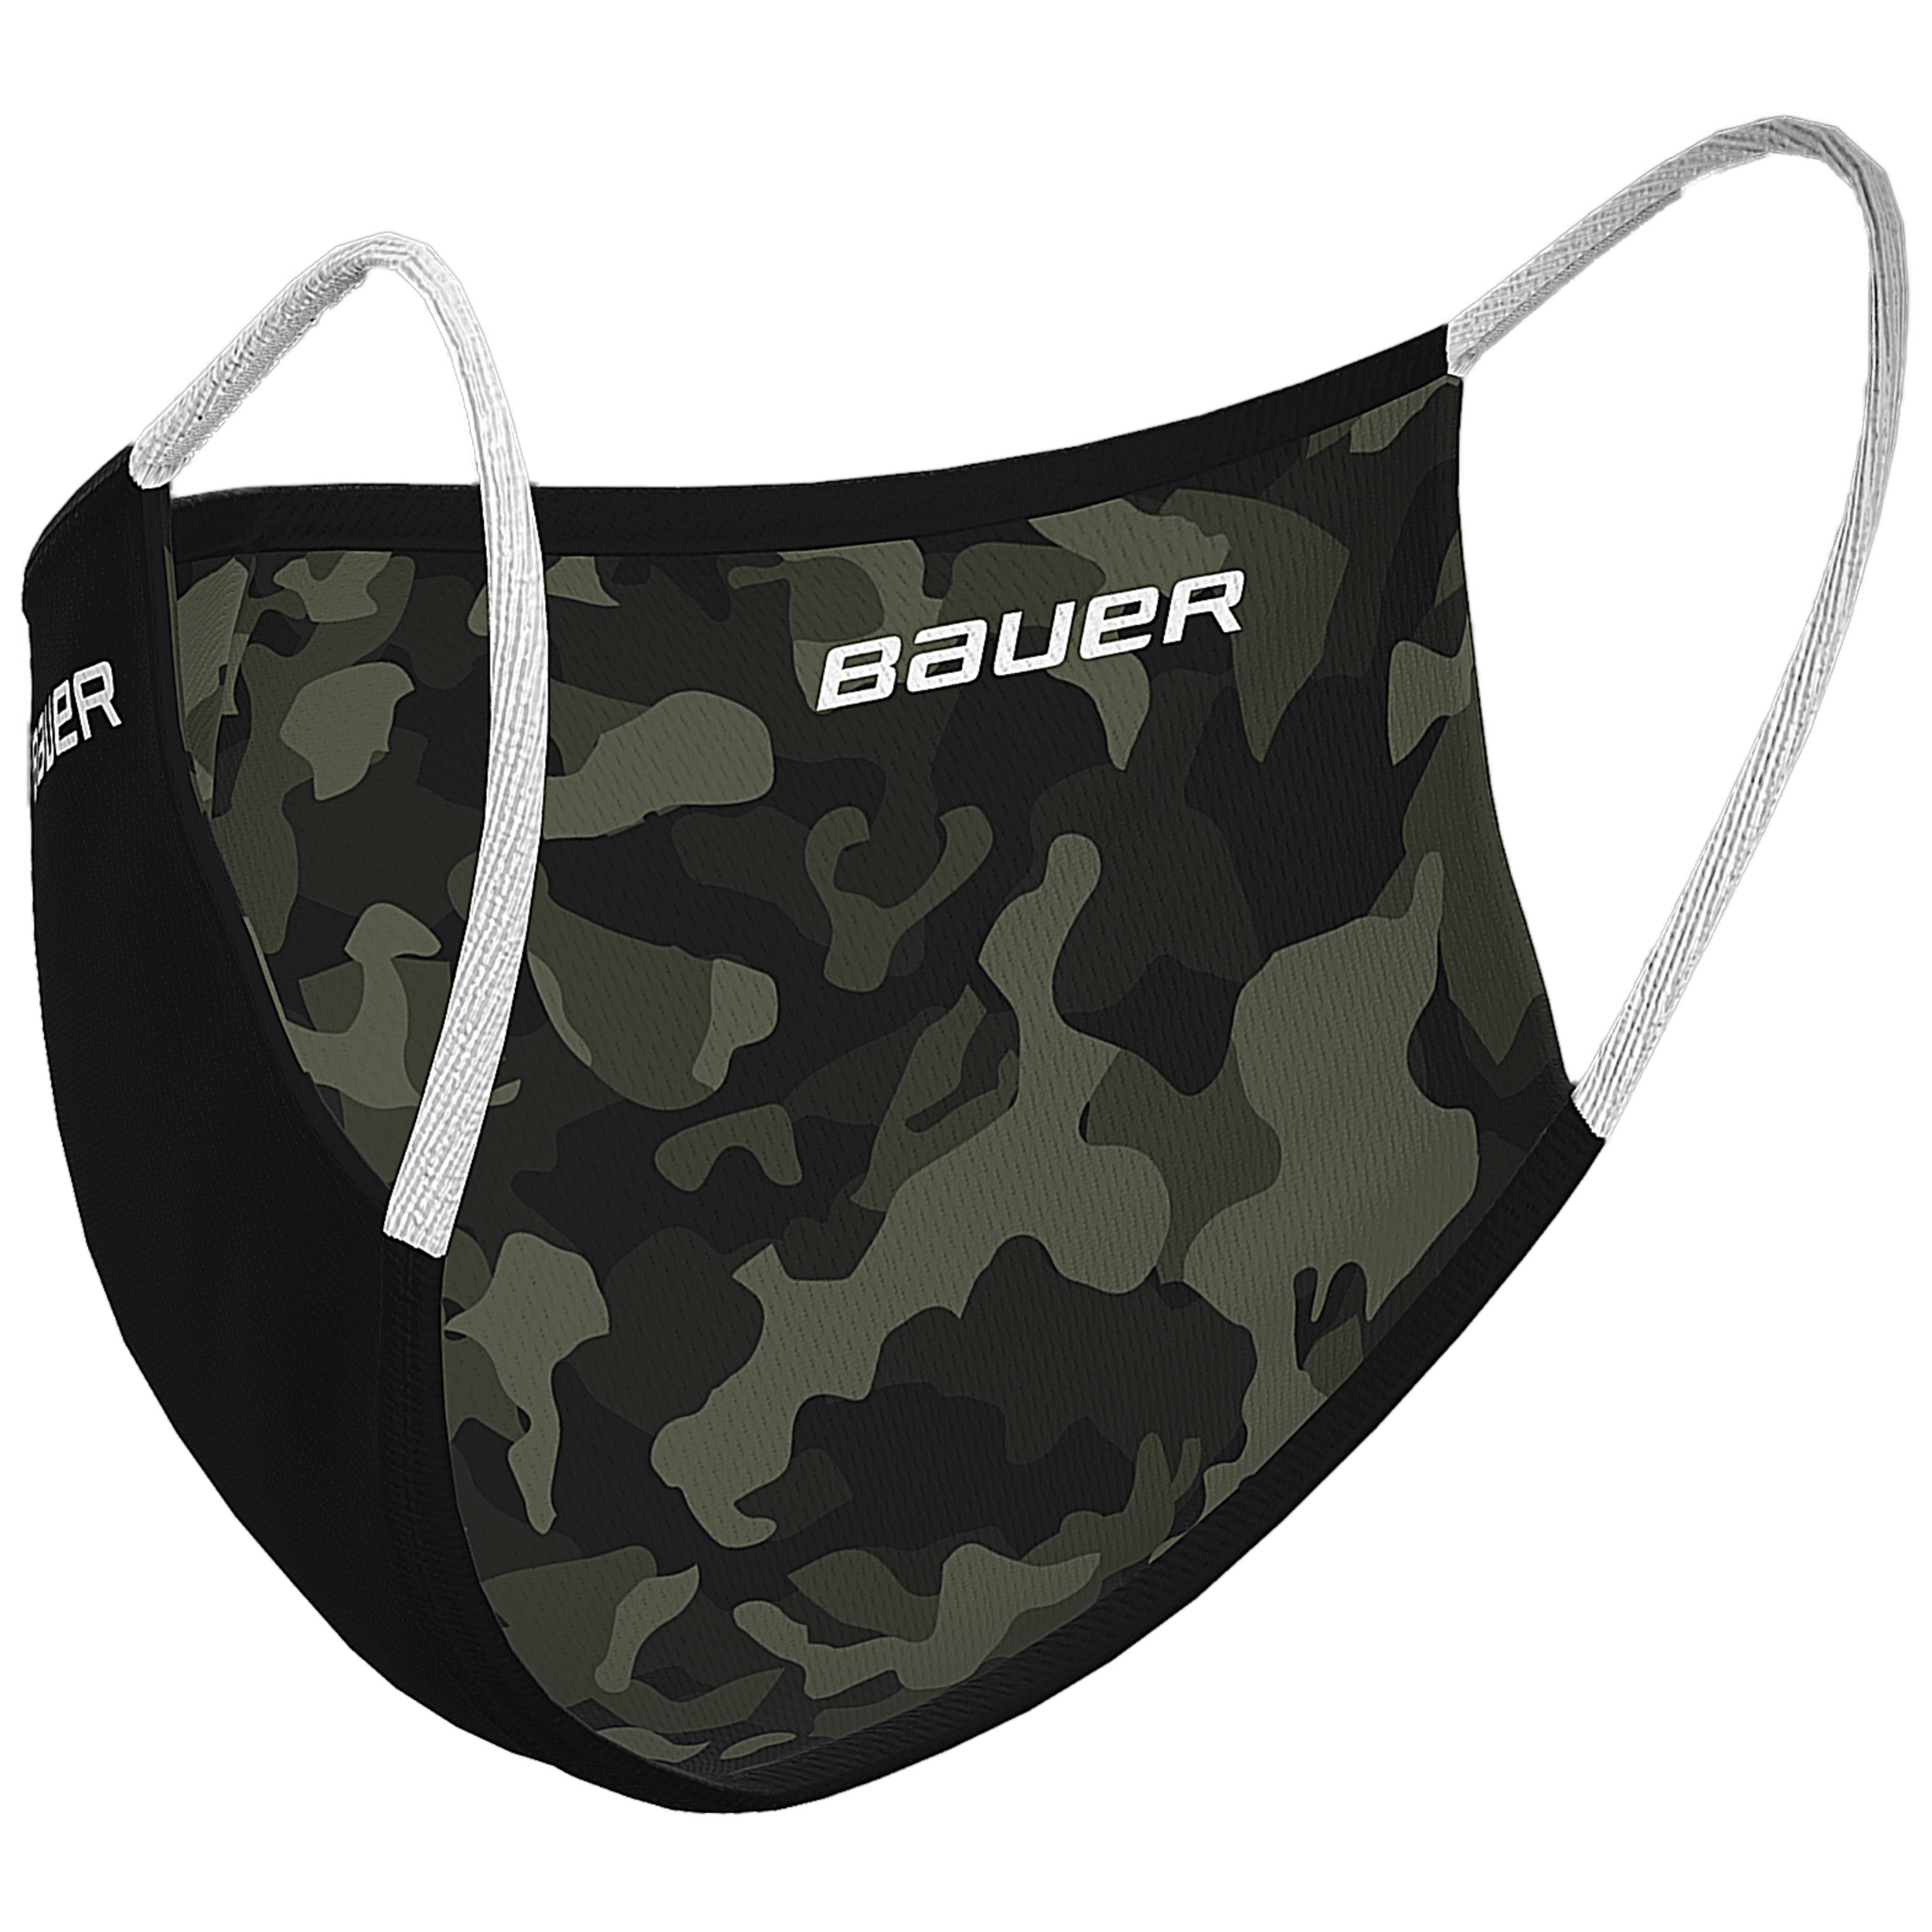 Bauer Reversible Fabric Face Mask Black/Camo,Black/Camo,Размер M